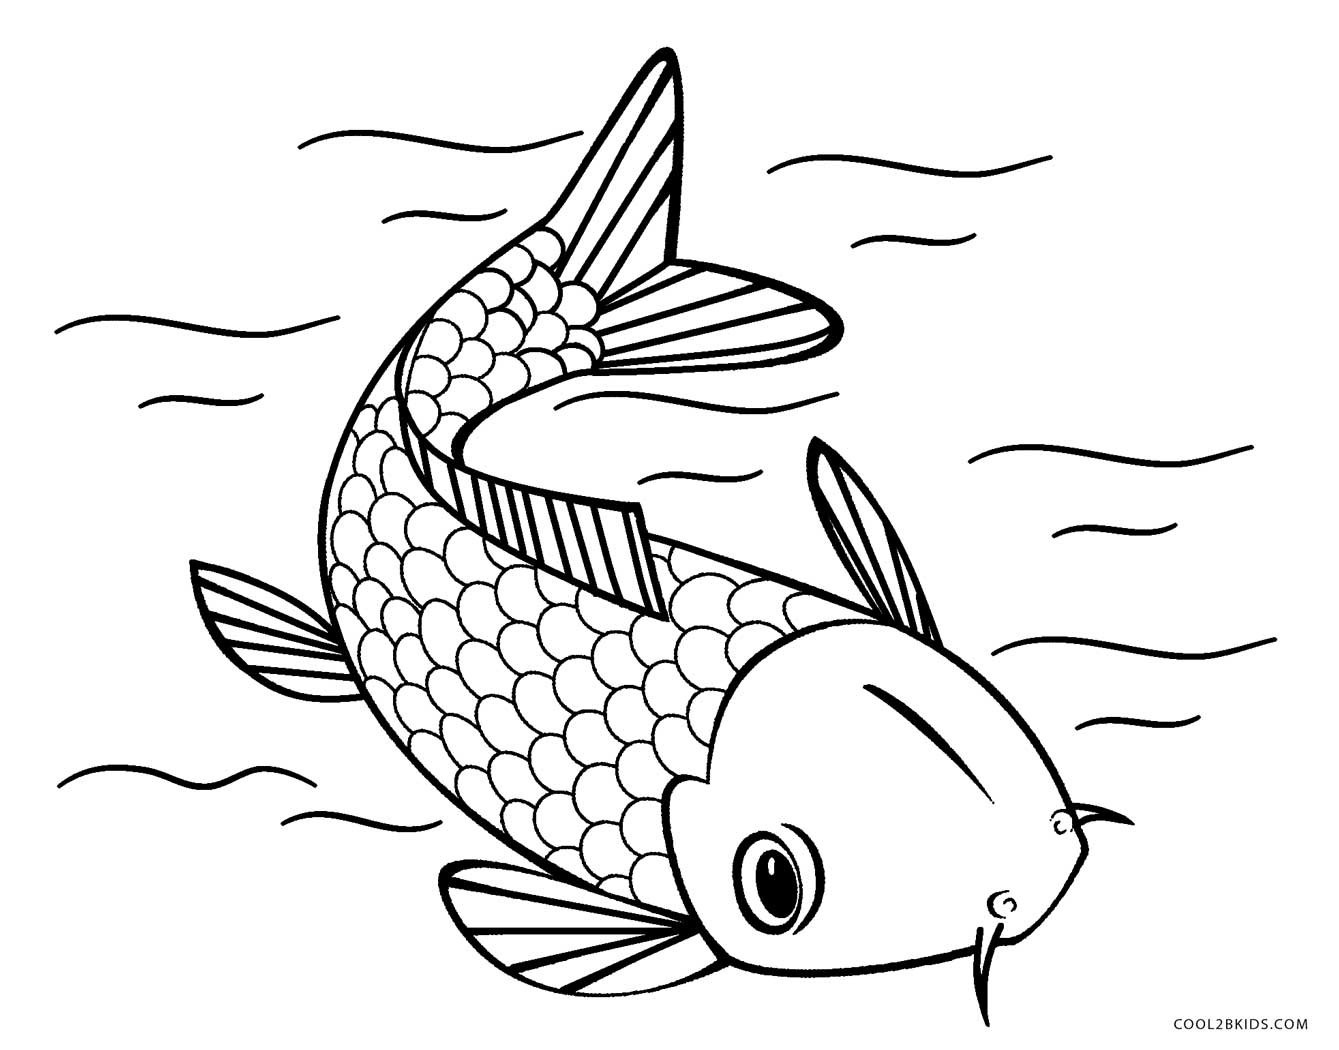 Fish Coloring Pages Free Printable Fish Coloring Pages For Kids - Free Printable Fish Coloring Pages